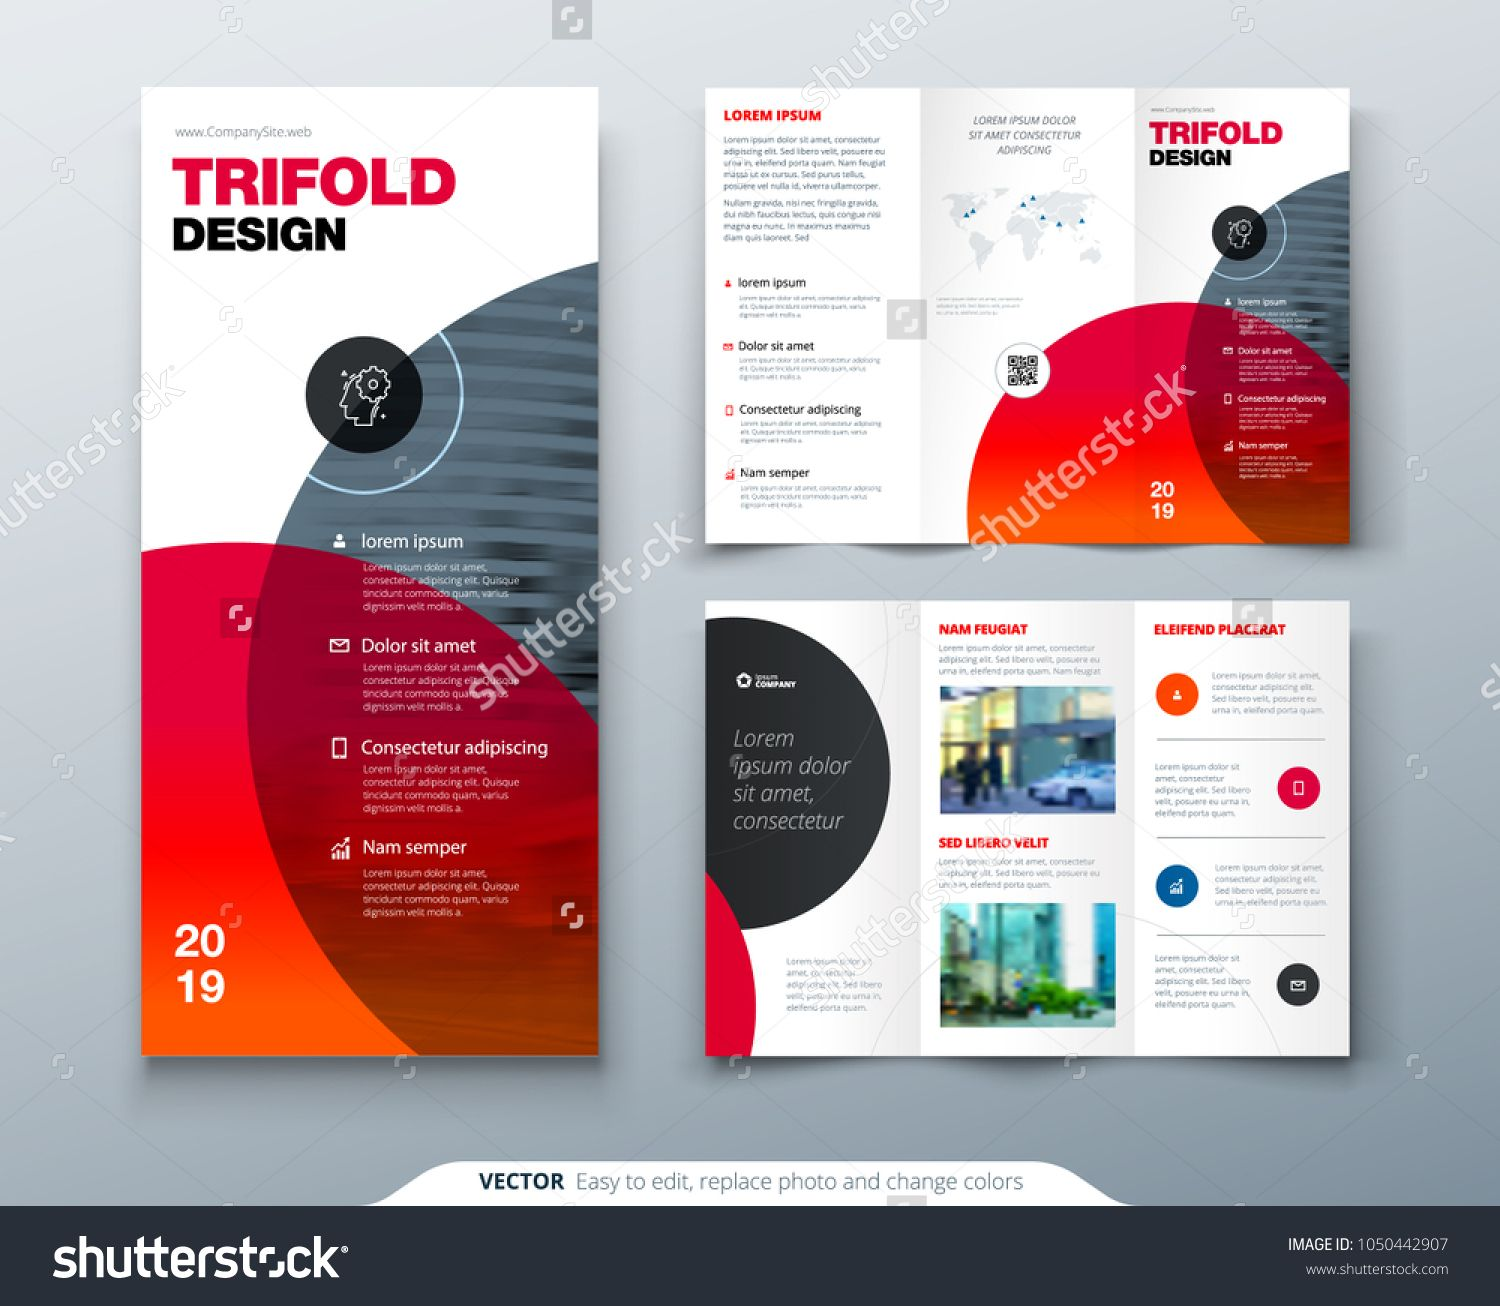 Tri Fold Brochure Design Business Template For Tri Fold Flyer Layout With Modern Circle Photo Trifold Brochure Design Brochure Design Free Brochure Template